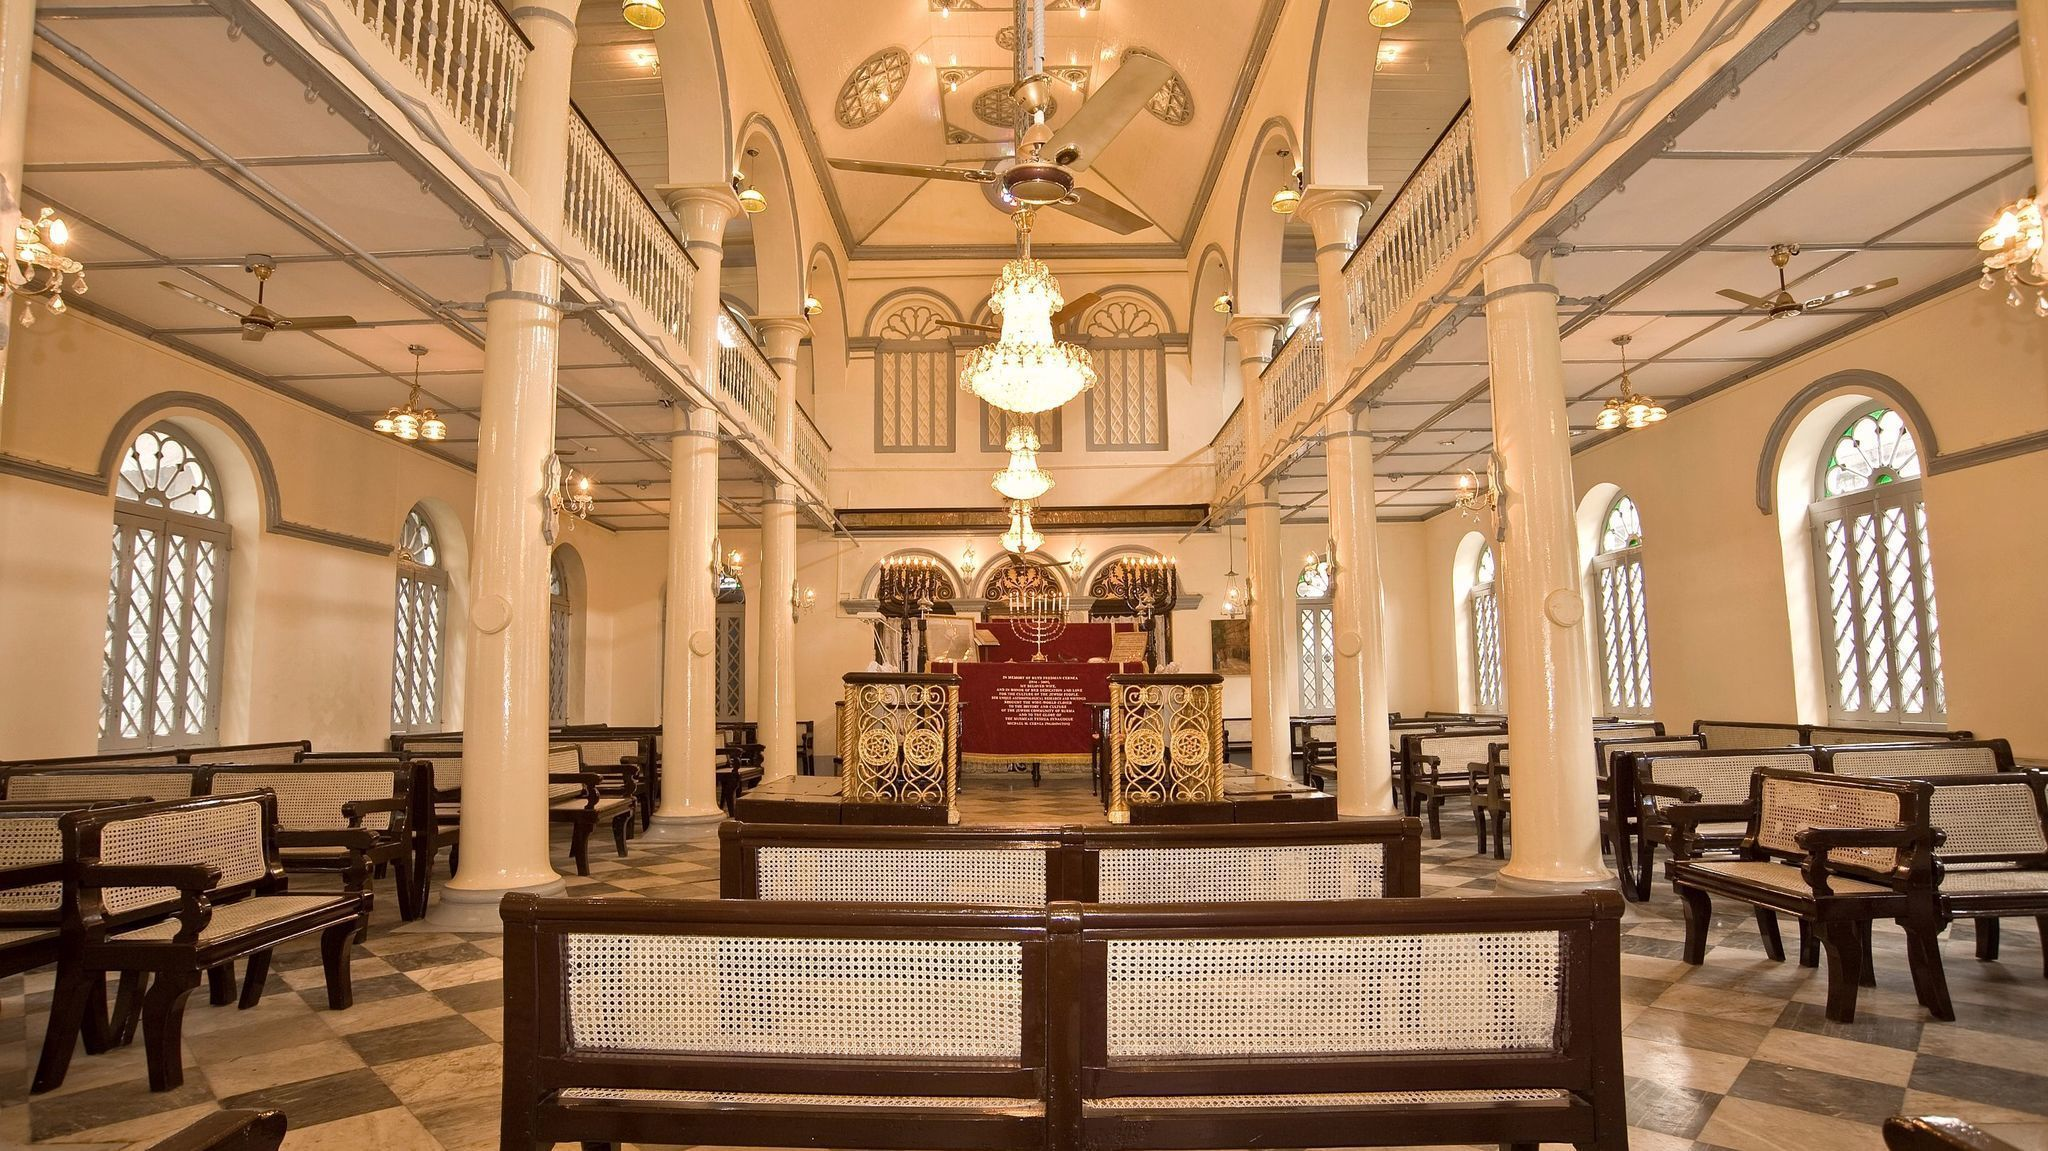 Rabbis lead Jewish heritage tour to Southeast Asia's synagogues